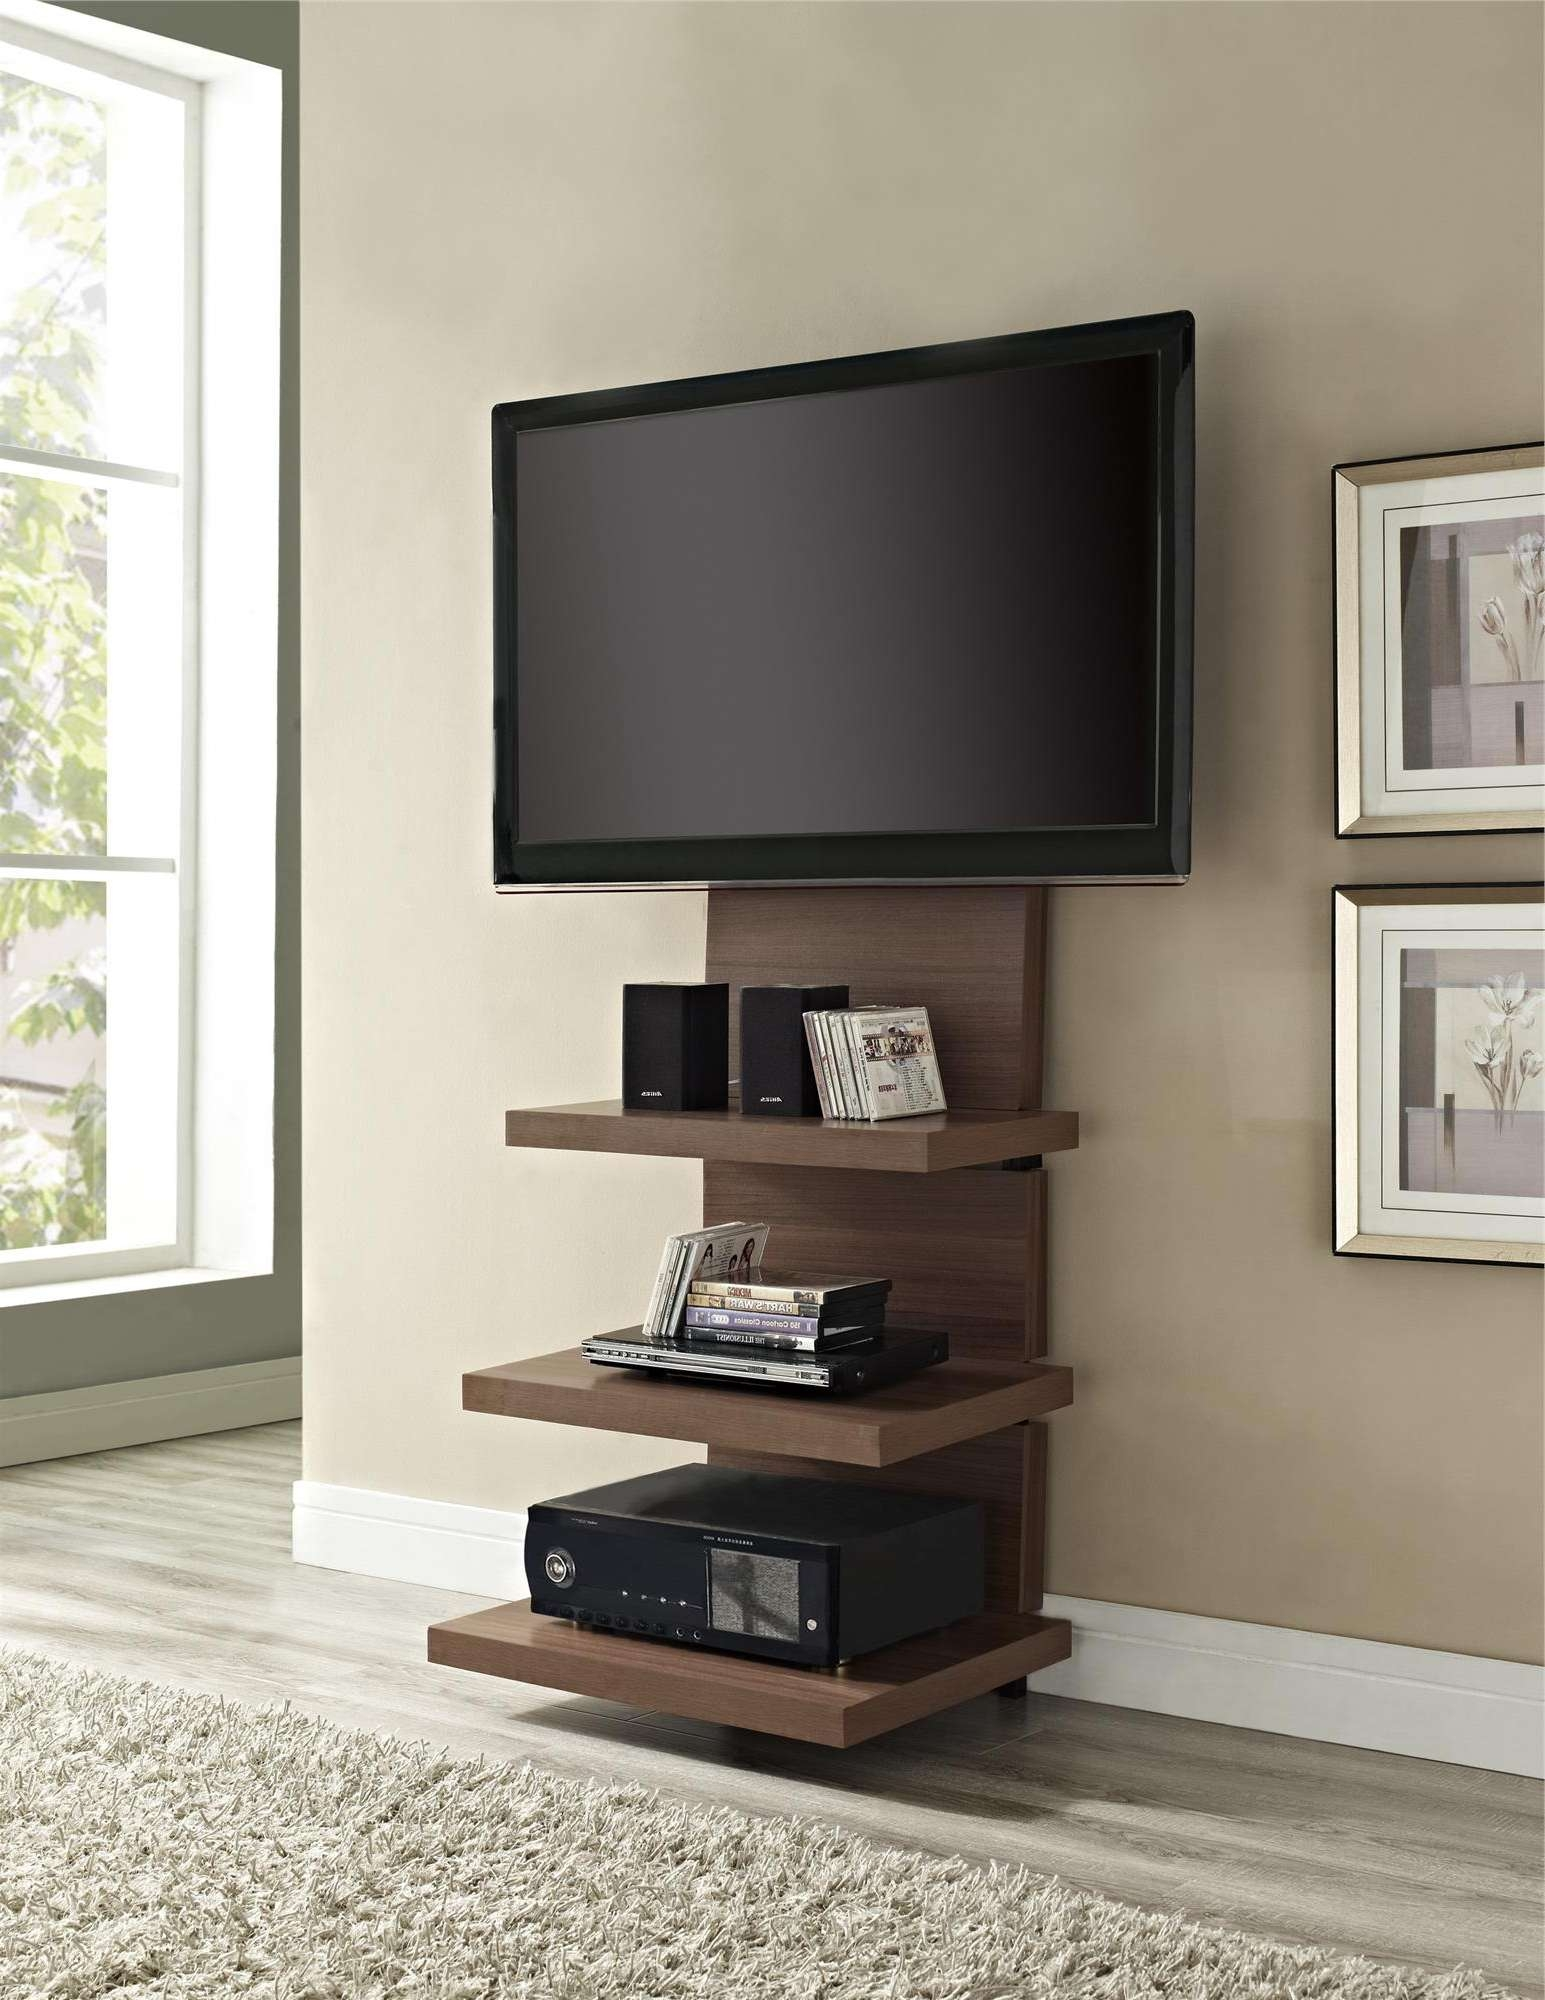 Tall Wood Wall Mounted Tv Stand With Shelves And Mount For Flat For Cheap Tall Tv Stands For Flat Screens (View 3 of 20)